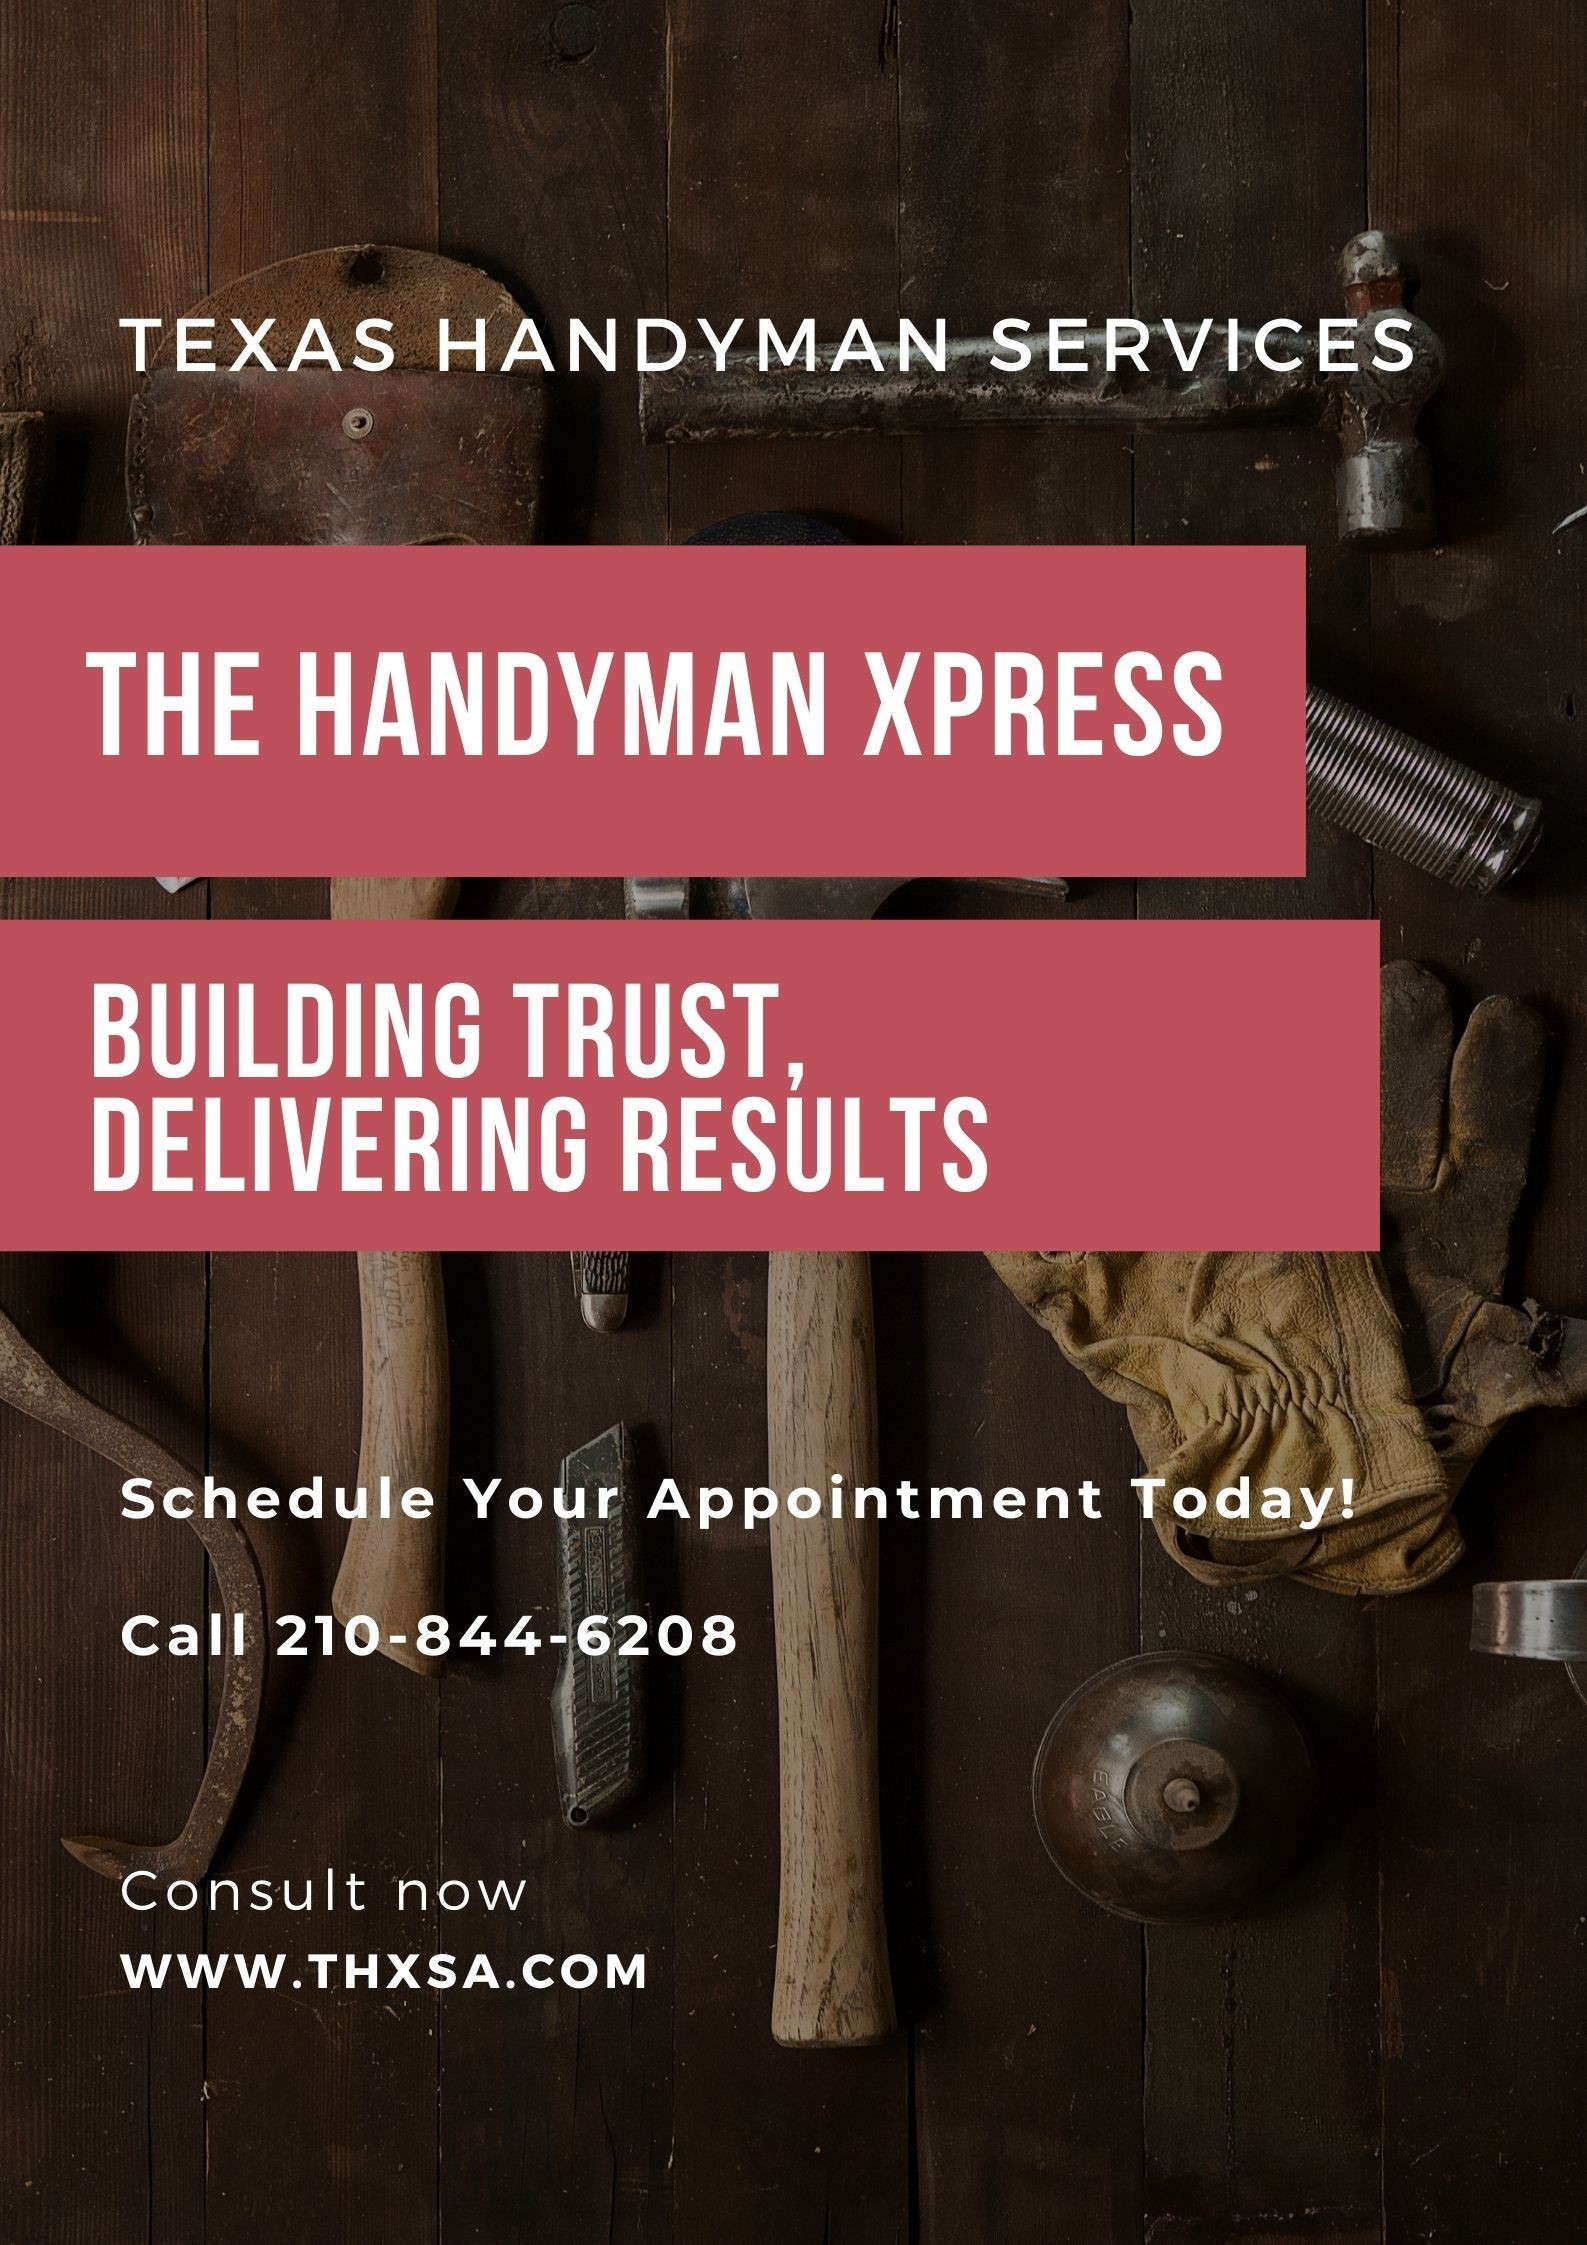 Texas Handyman Services